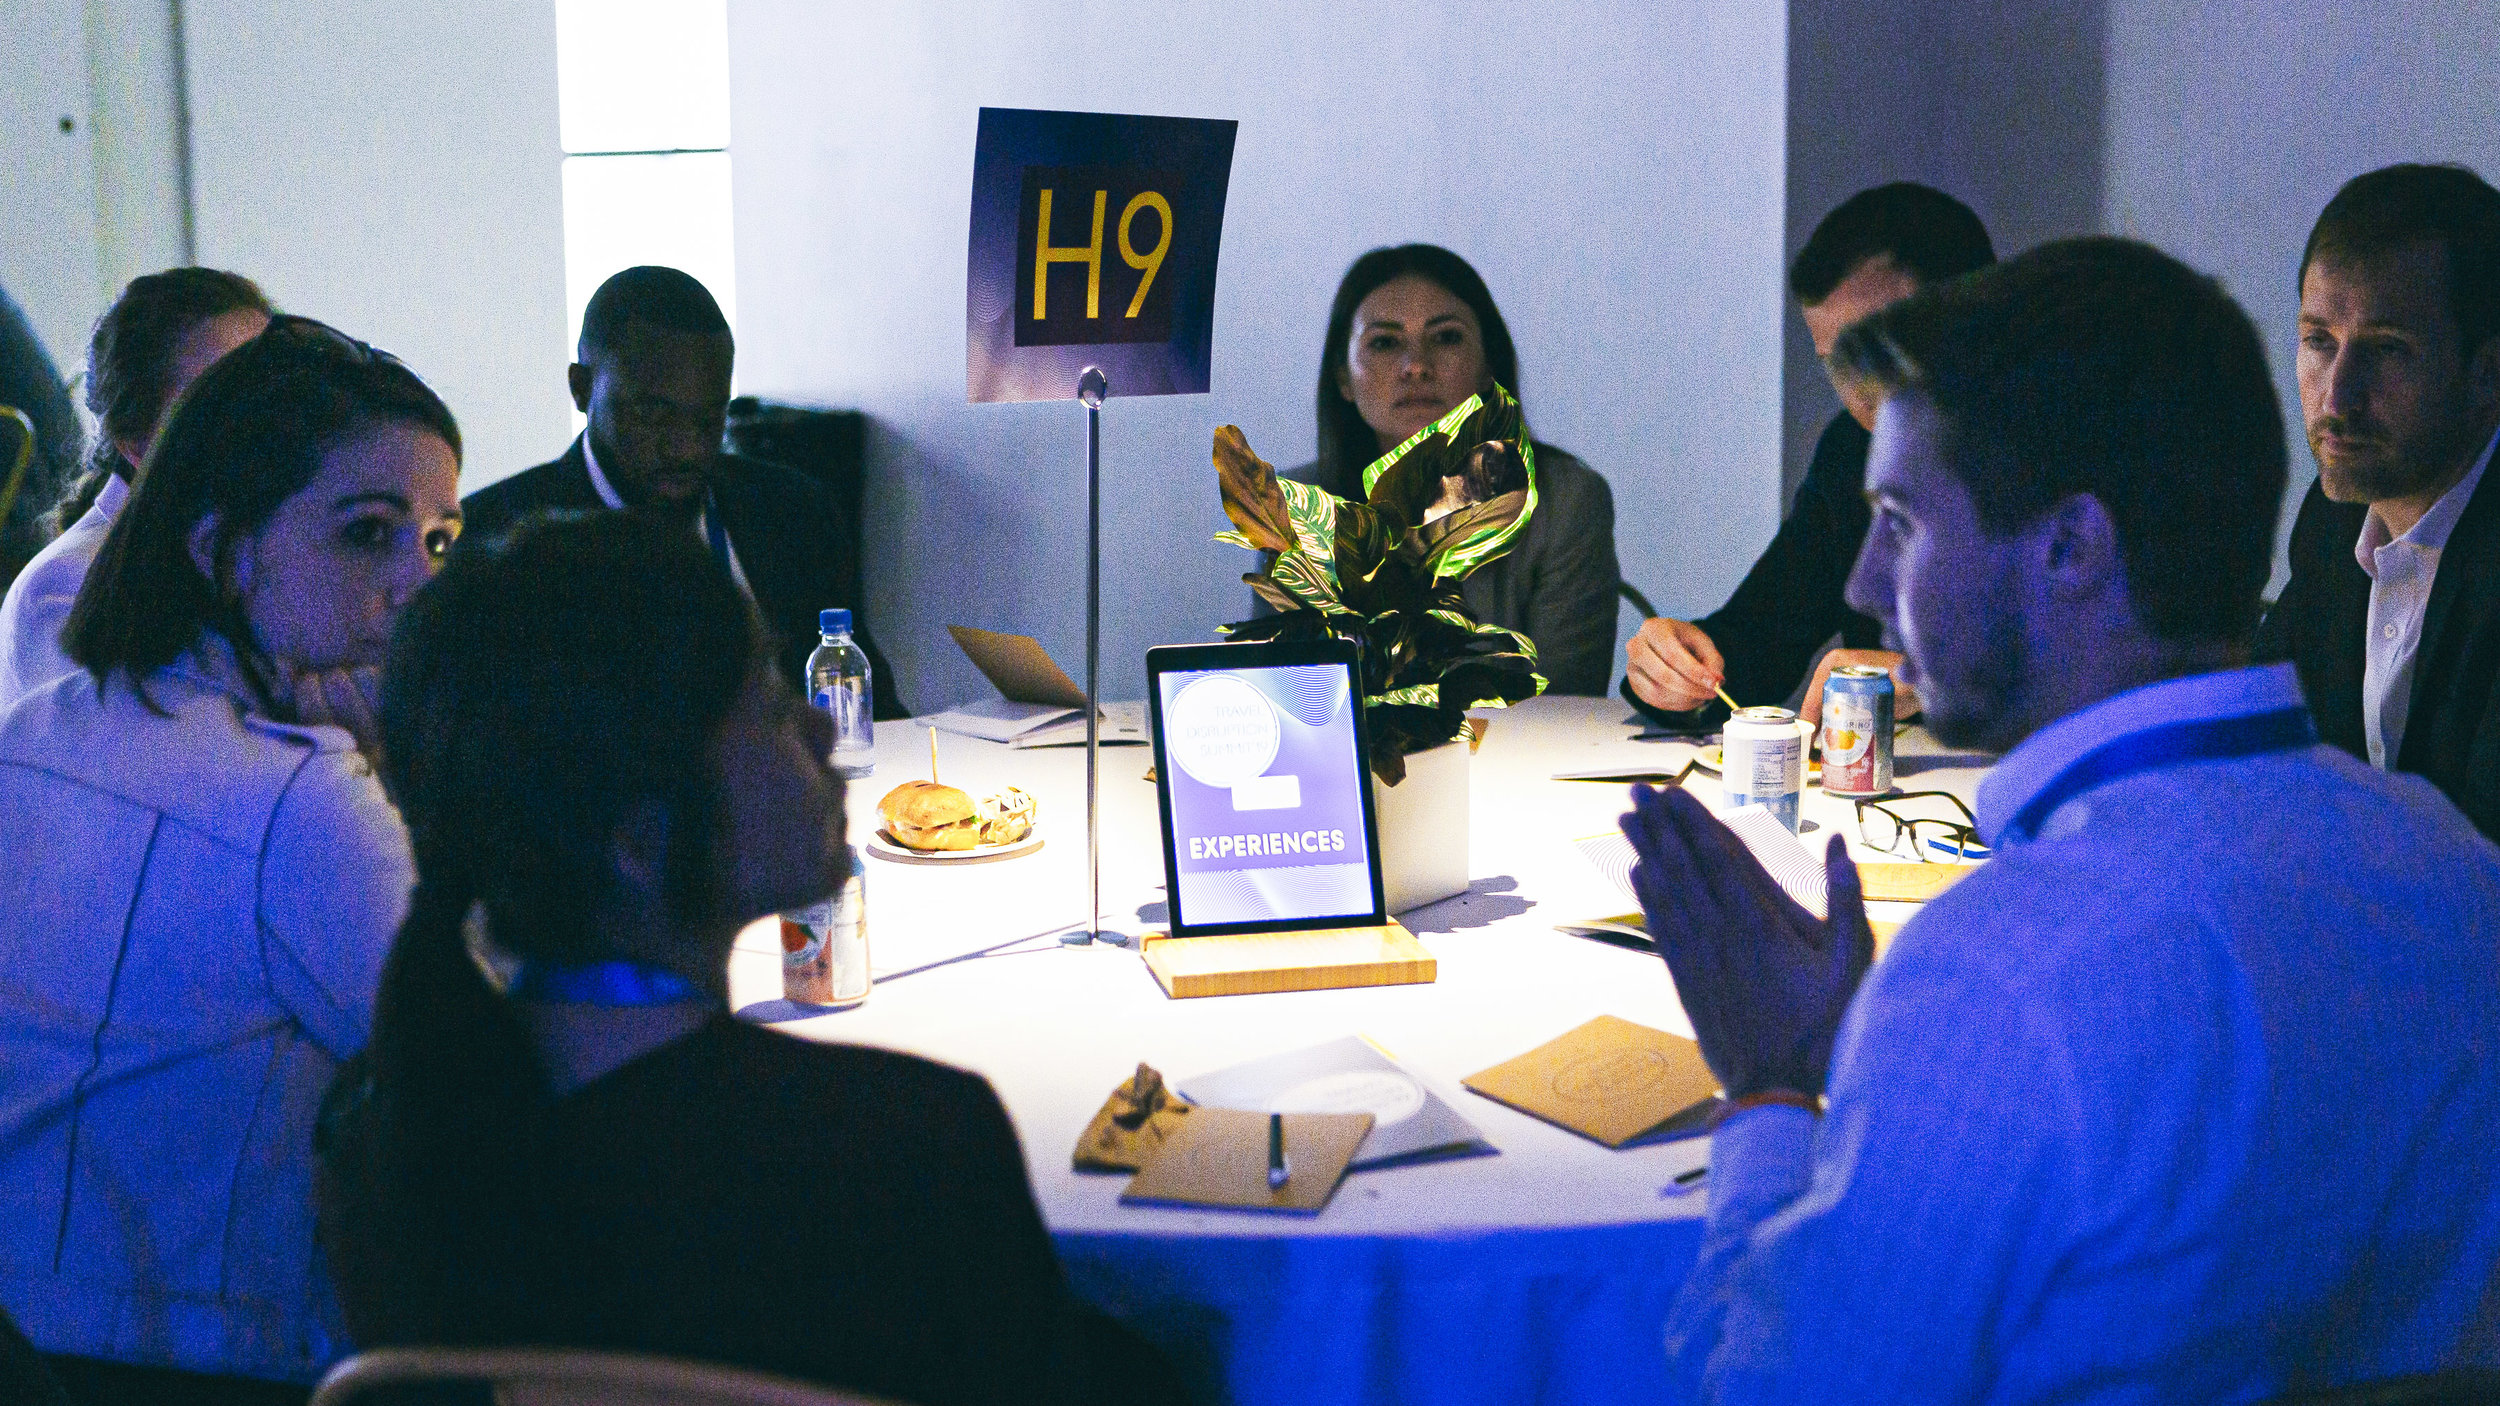 Attendees at the Hospitality: Guest Experiences roundtable at the 2019 Travel Disruption Summit